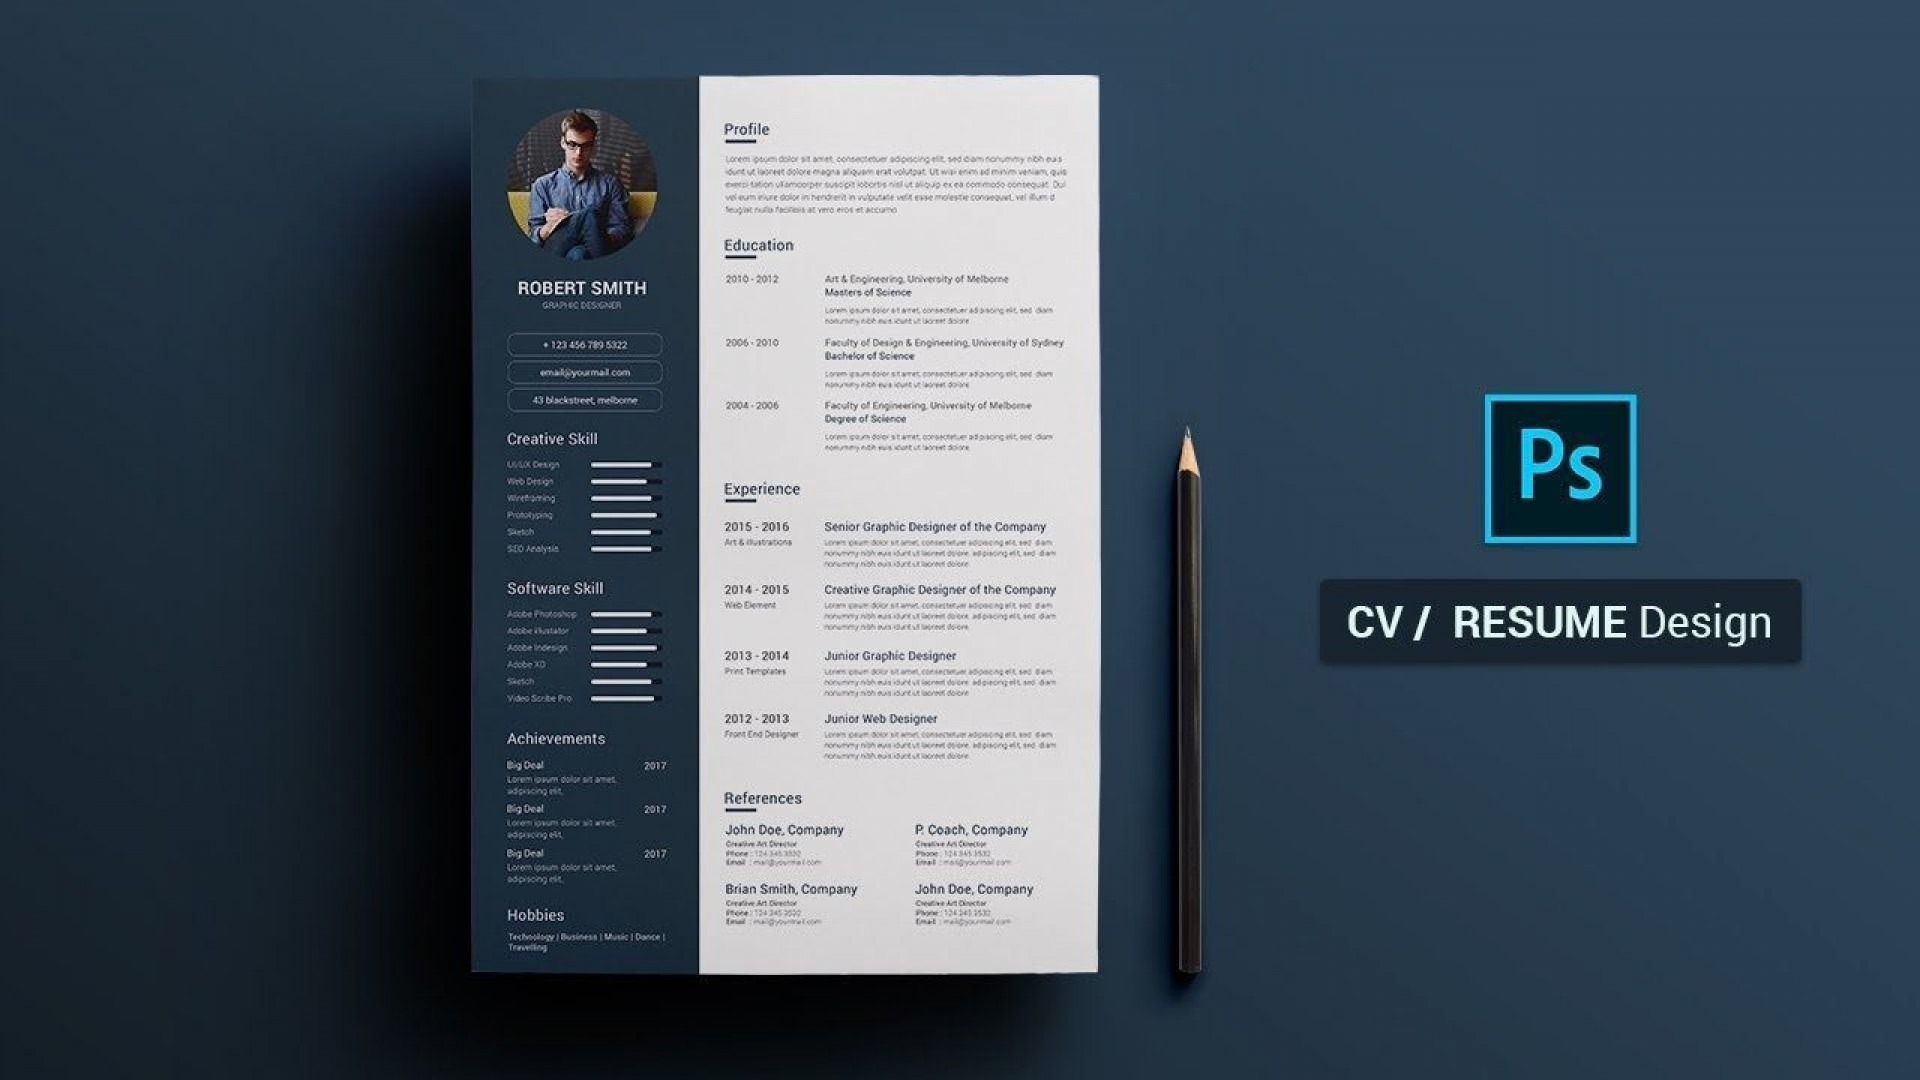 007 Excellent How To Create A Resume Template In Photoshop High Definition 1920